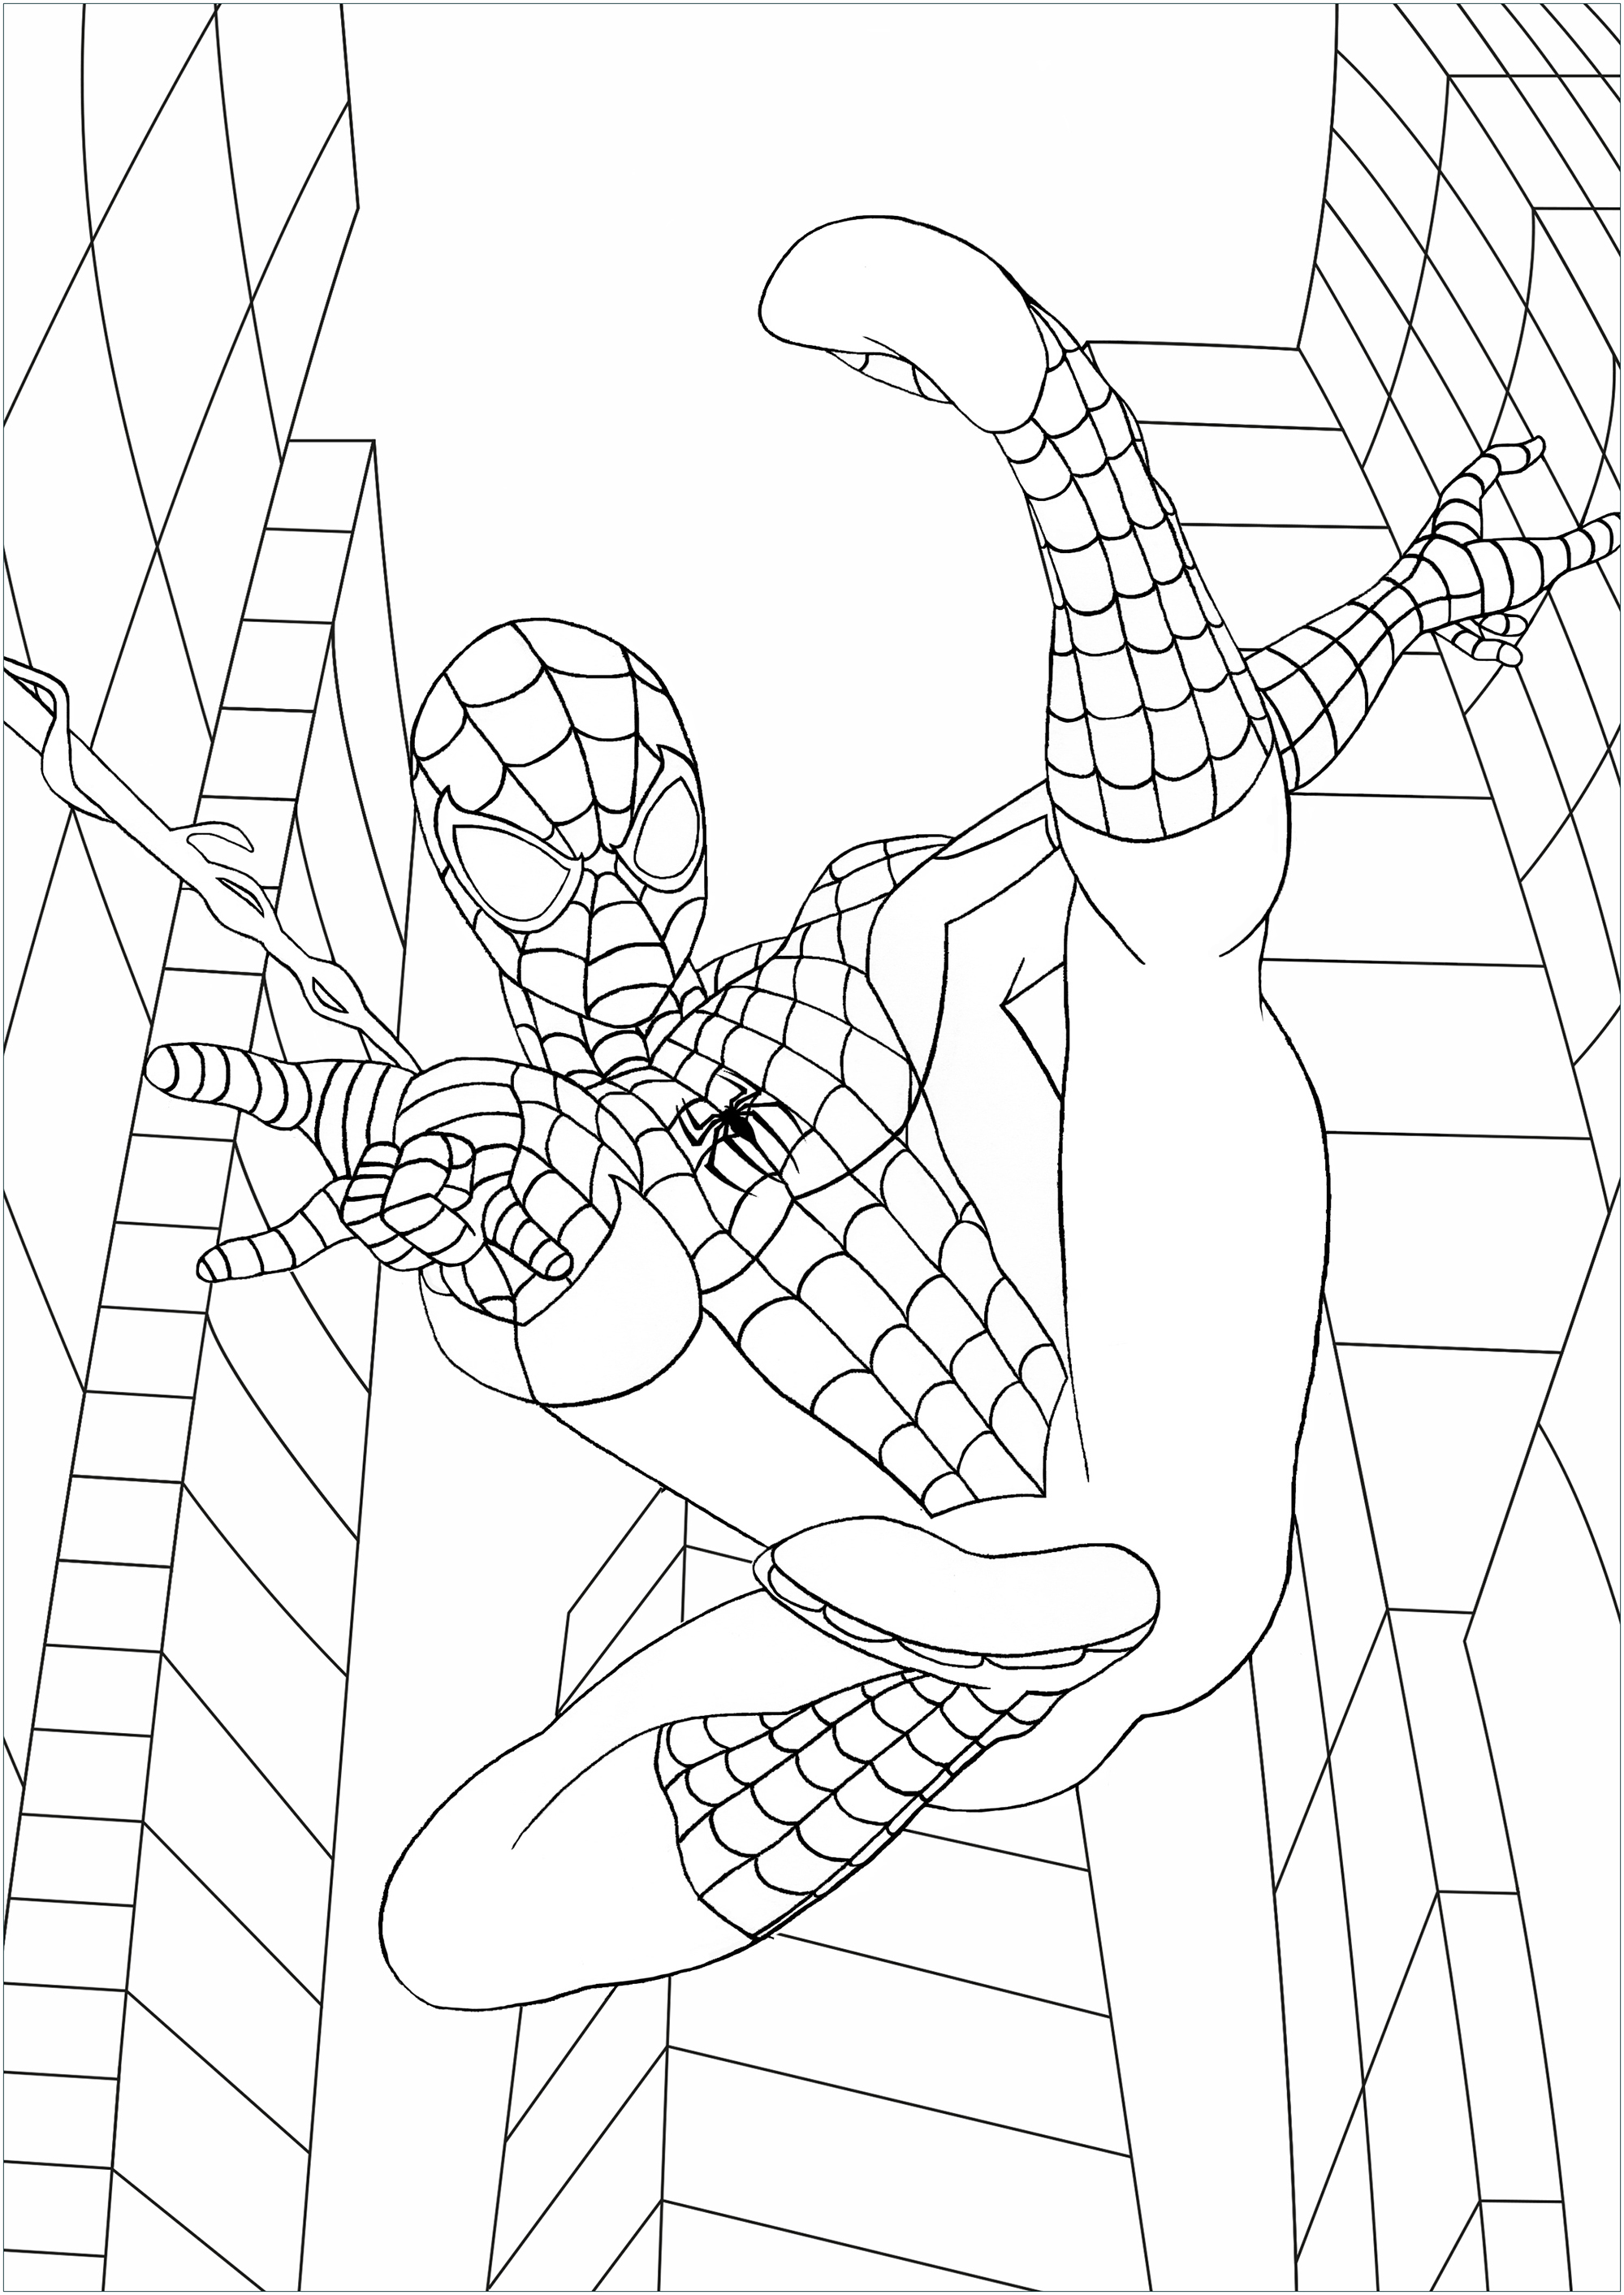 Spiderman free to color for kids - Spiderman Kids Coloring ...